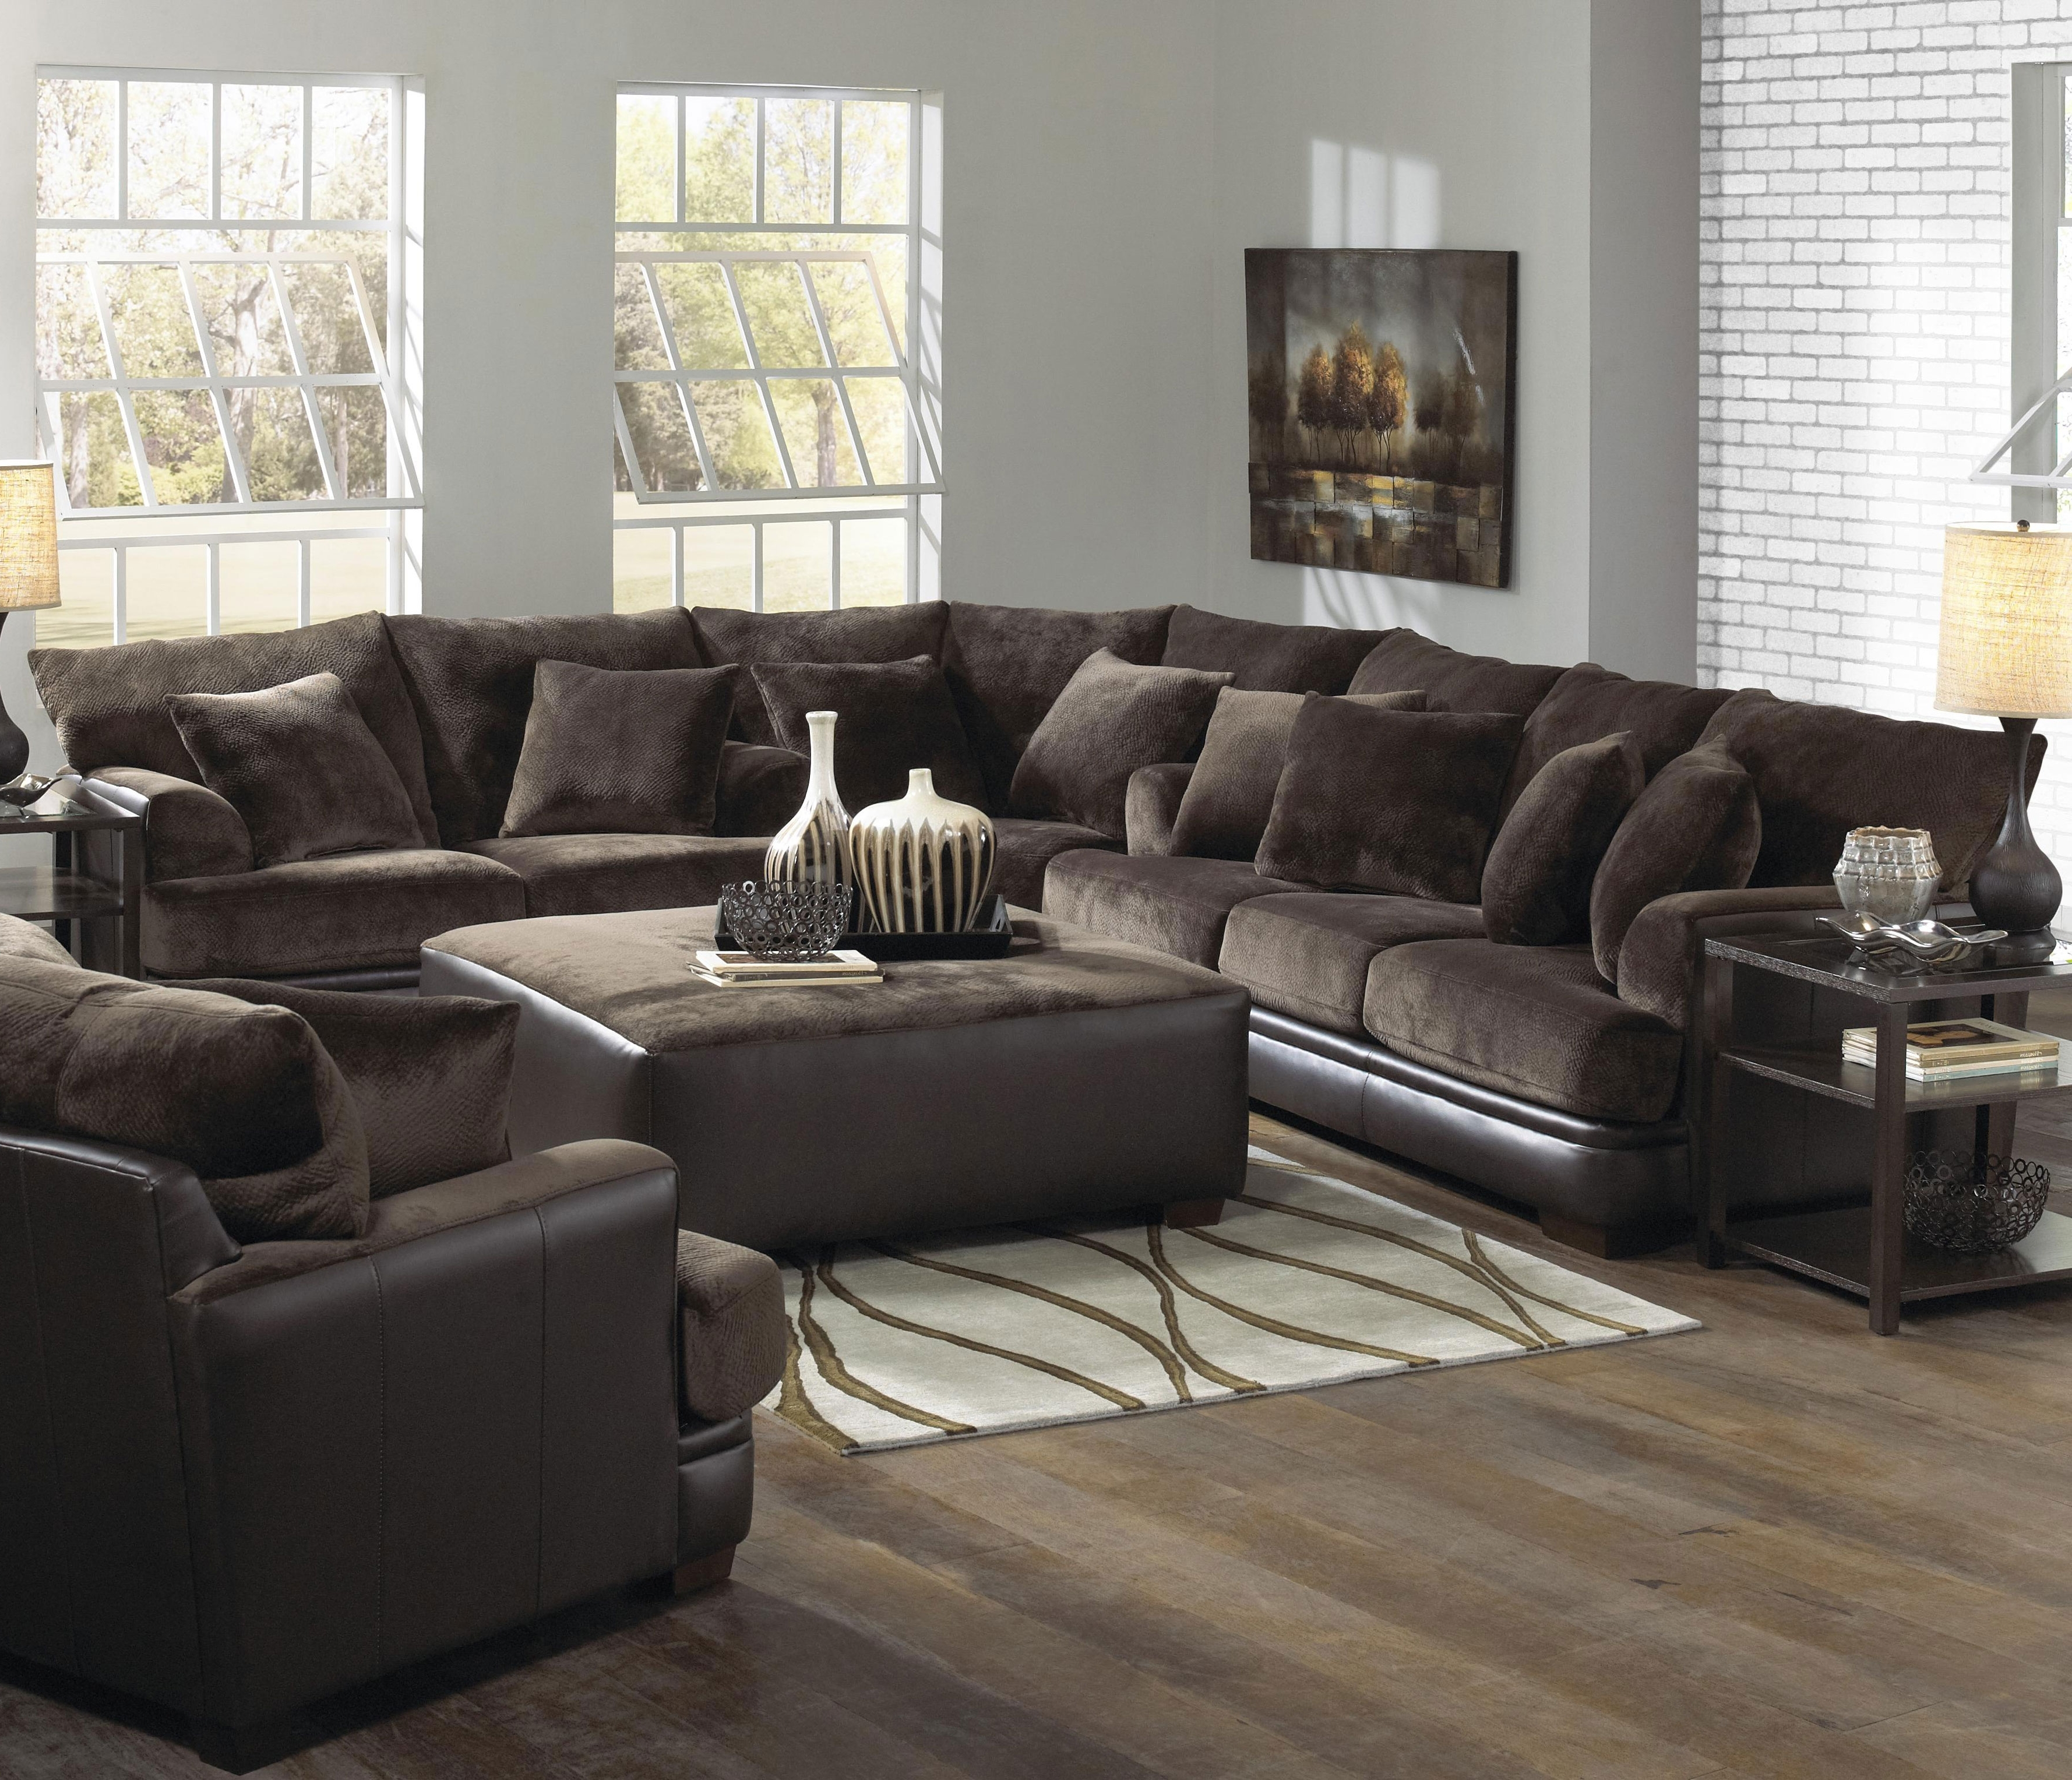 C Shaped Sofas In Popular Sectional Sofa: The Best Design C Shaped Sofa Sectional C Shaped (View 1 of 20)